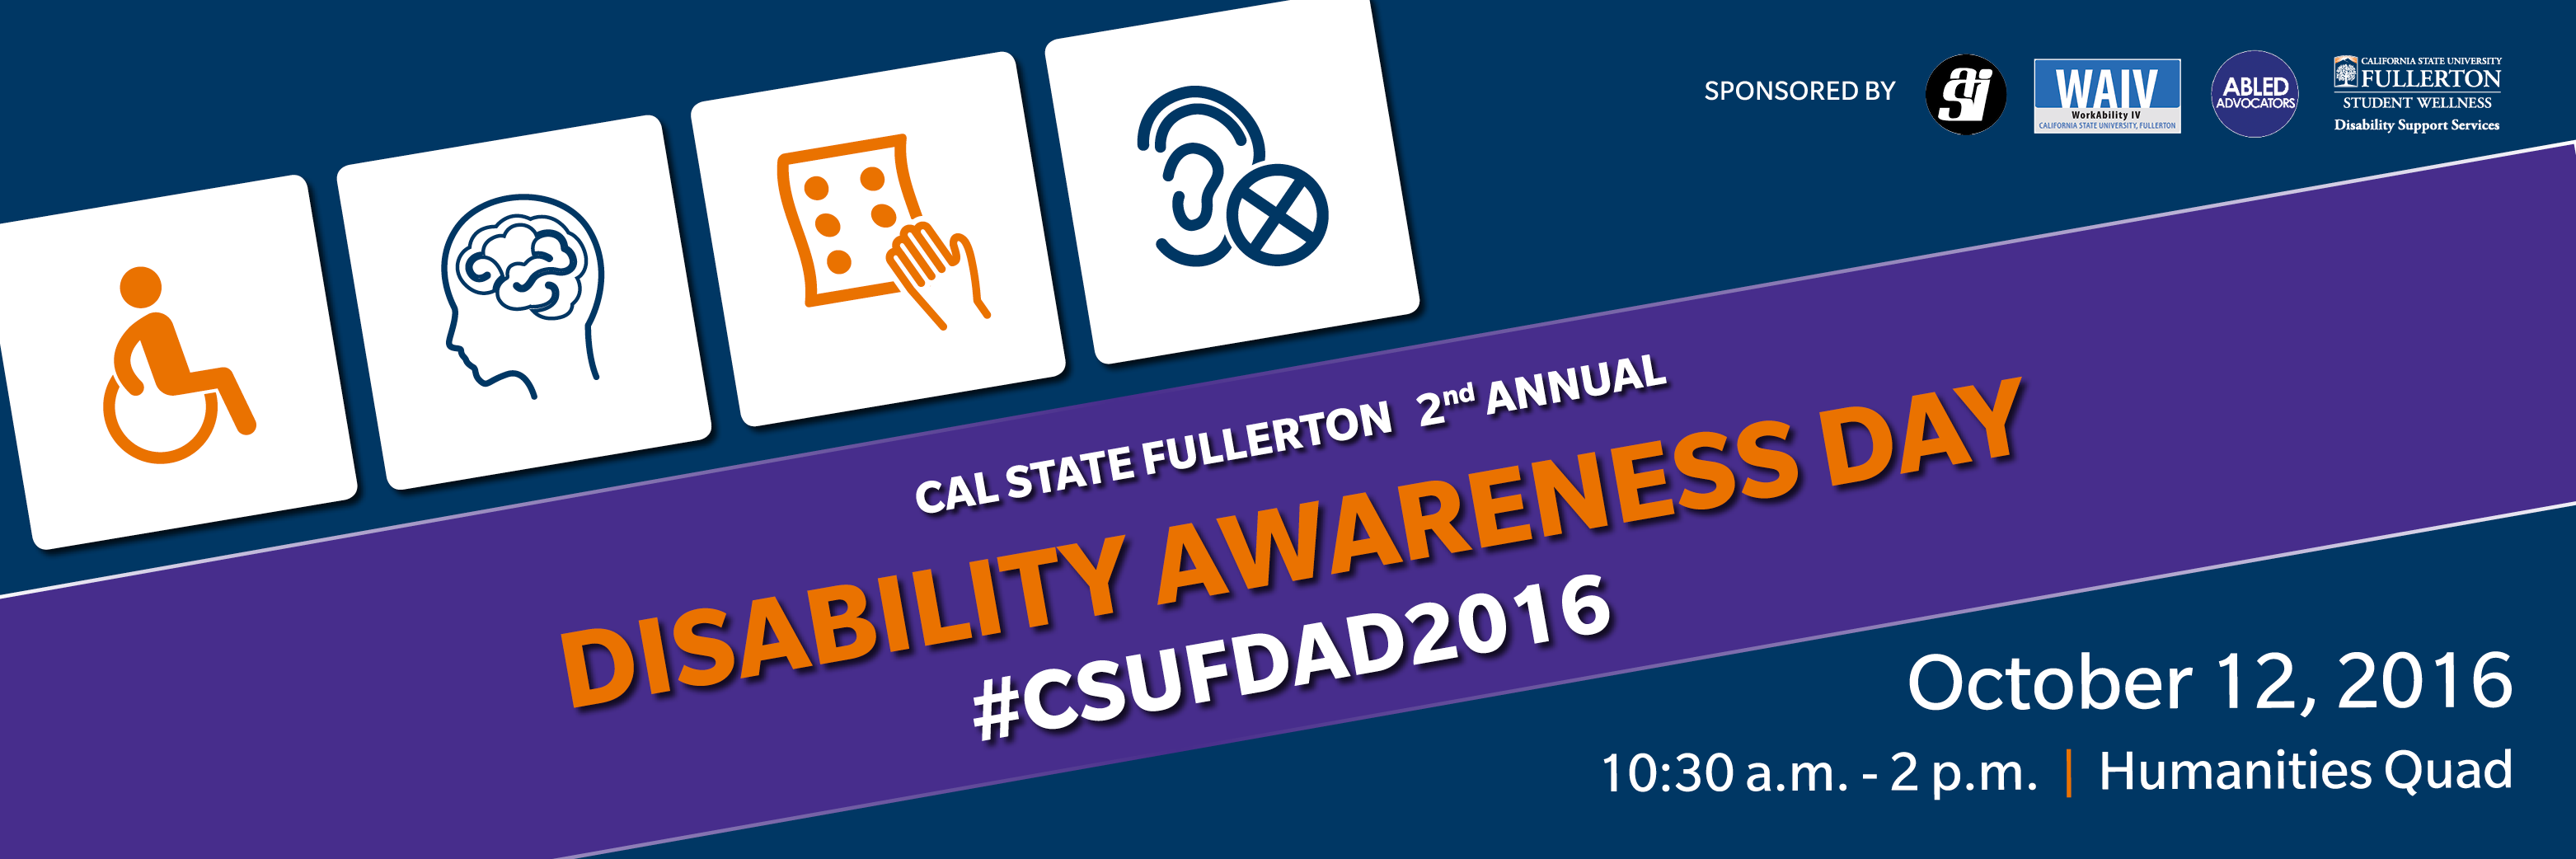 Disability Awareness Day October 12, 10:30 AM - 2 PM, Humanities Quad